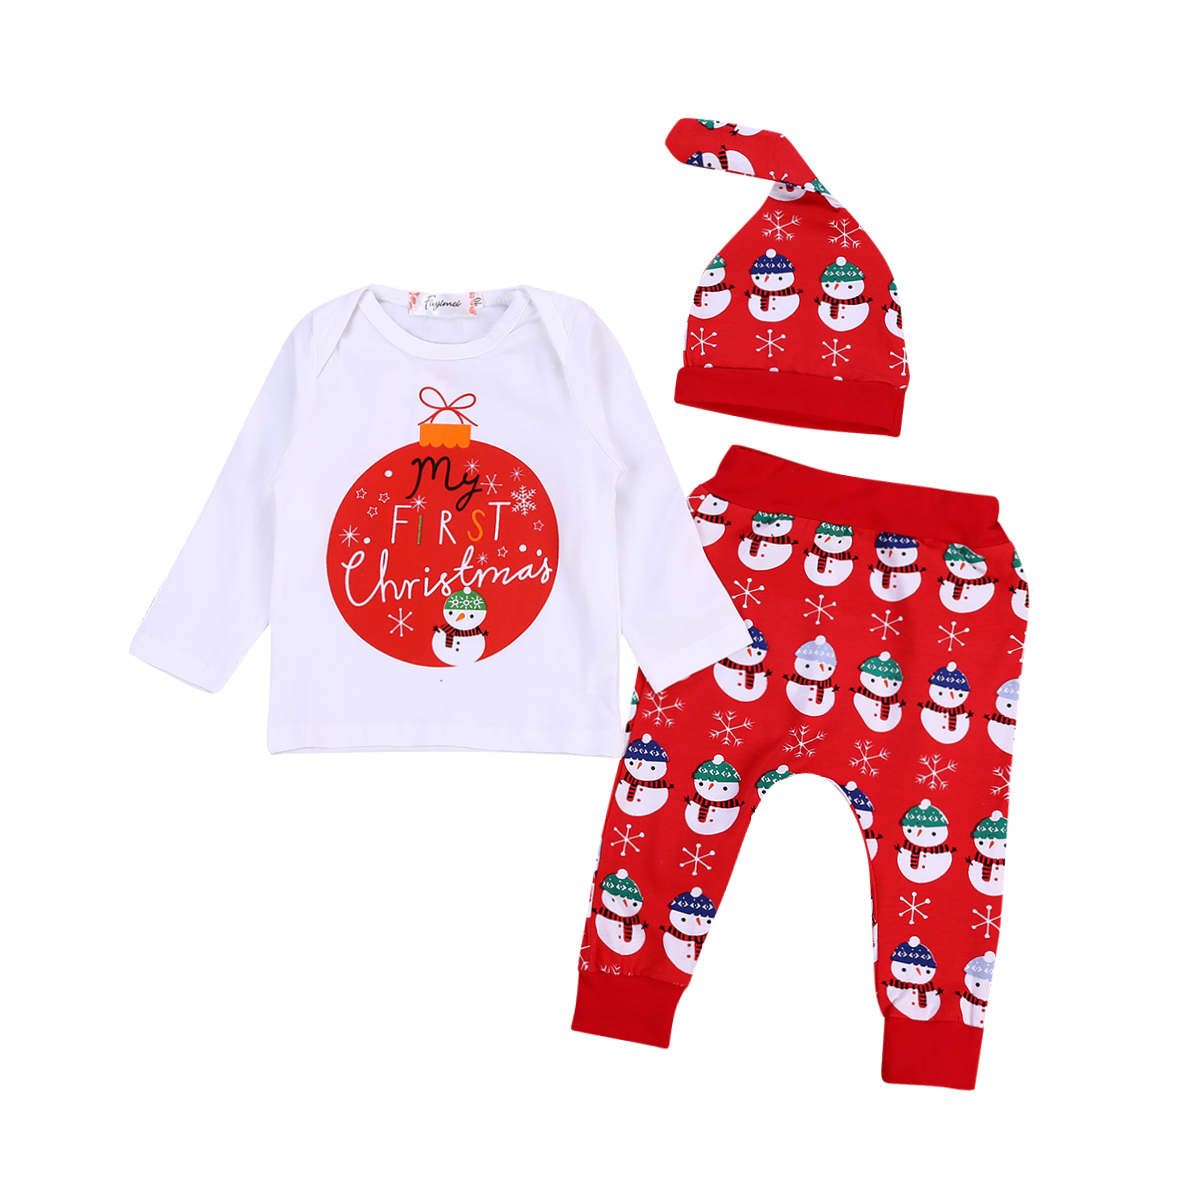 27080fdbfde1 Detail Feedback Questions about Baby Boys Girls Clothes Set MY FIRST ...